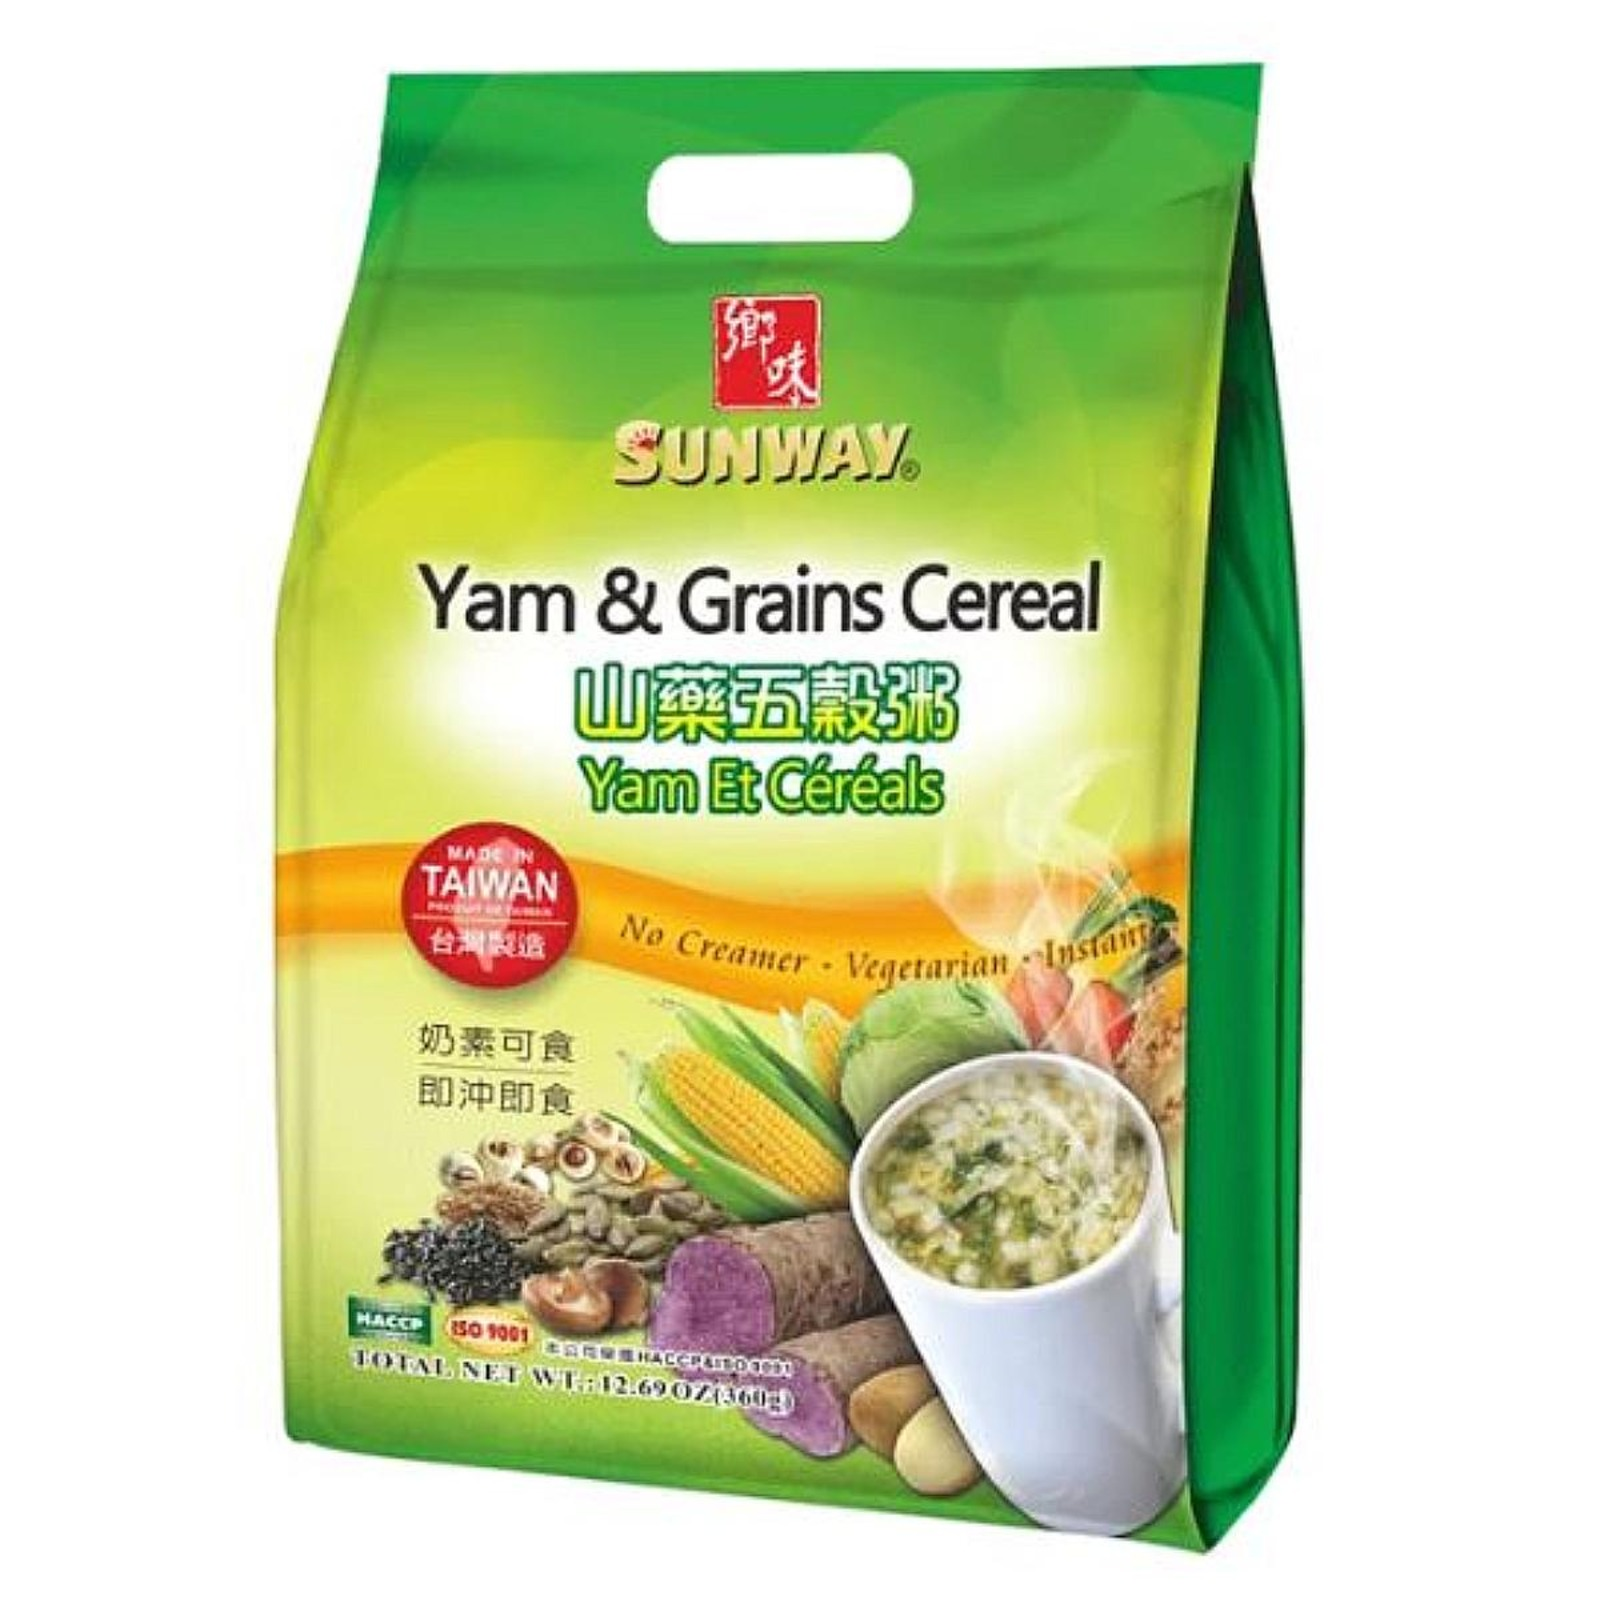 Sunway Yam & Grains Cereal